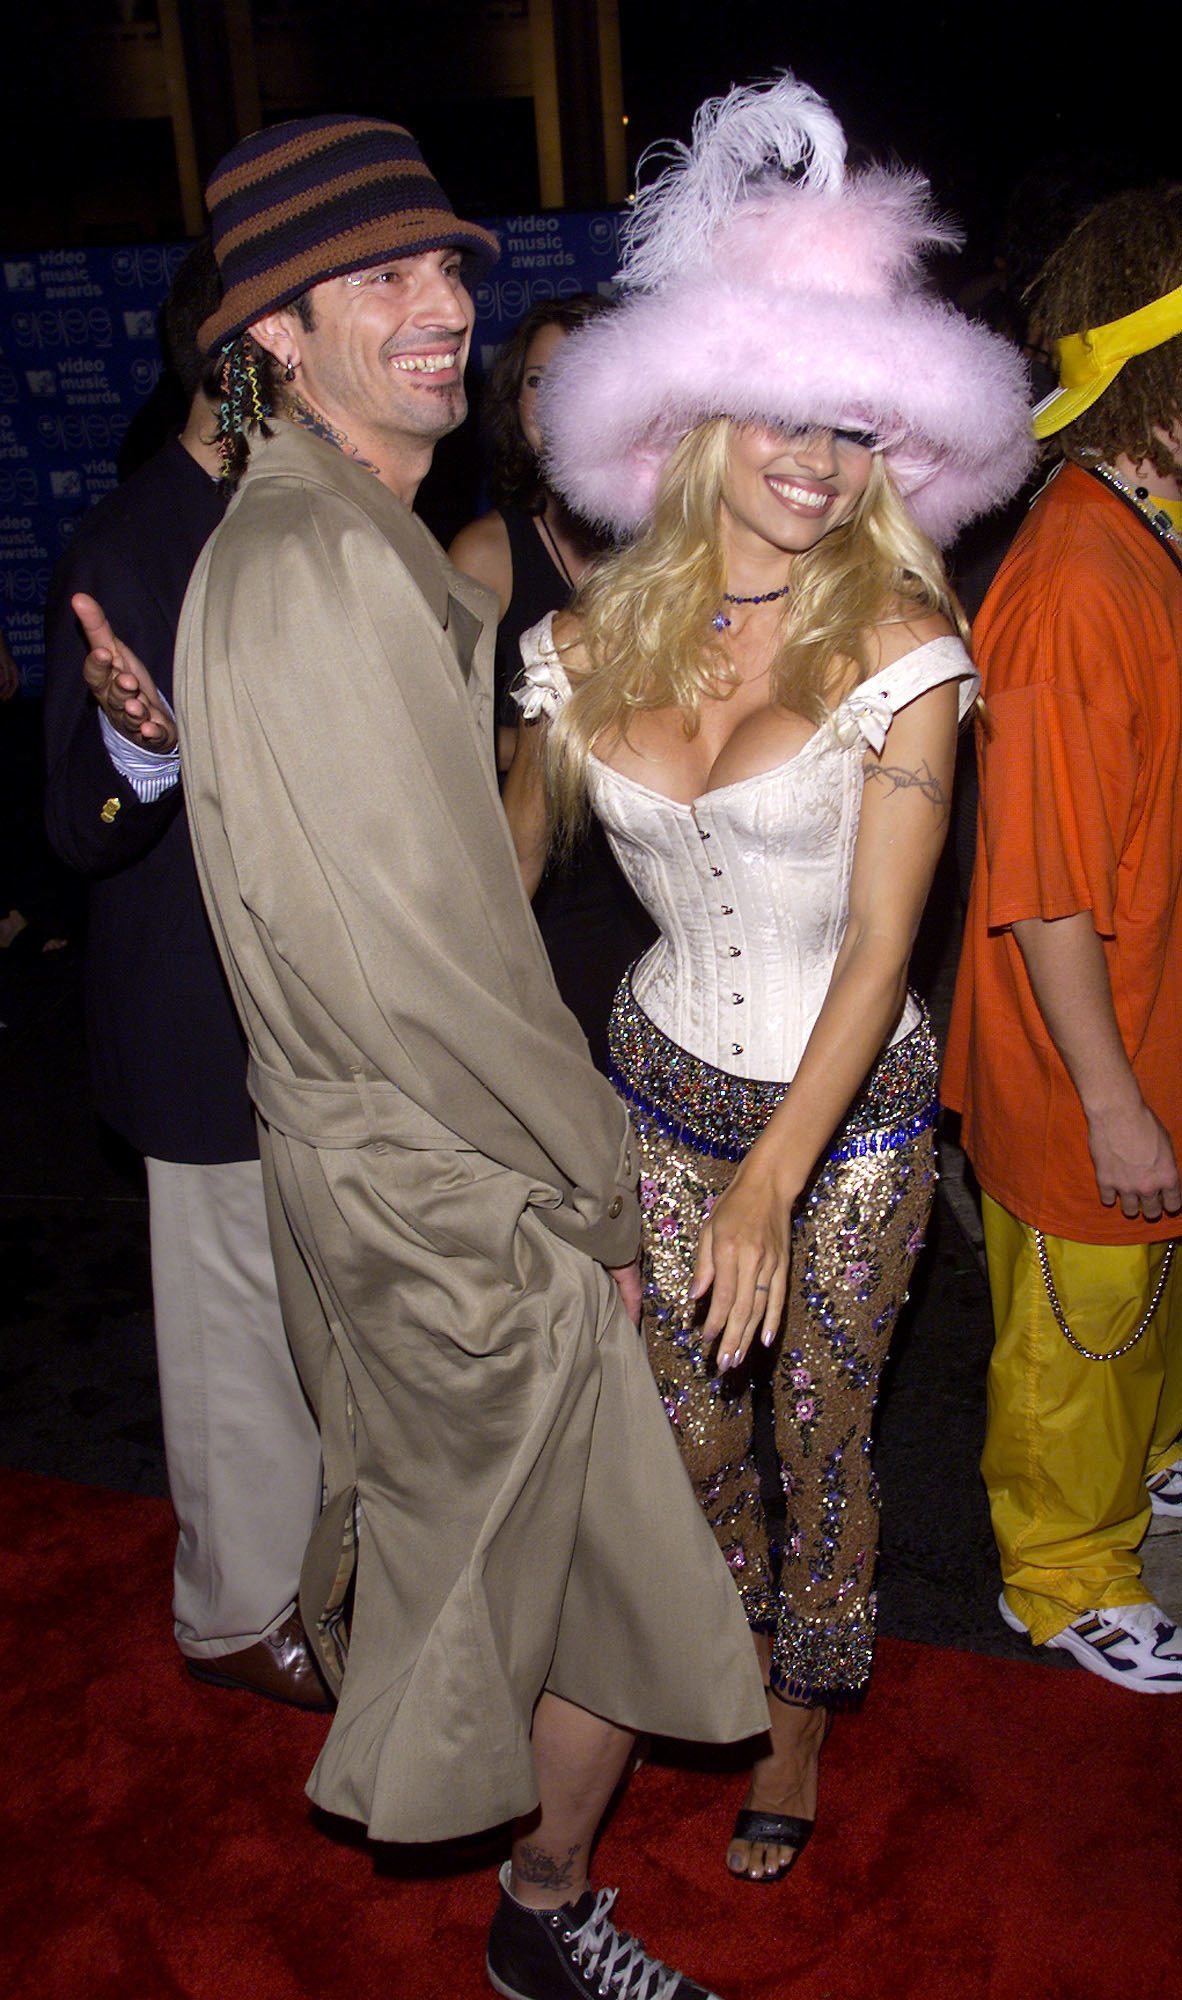 Tommy Lee and Pamela Anderson at the 1999 Video Music Awards